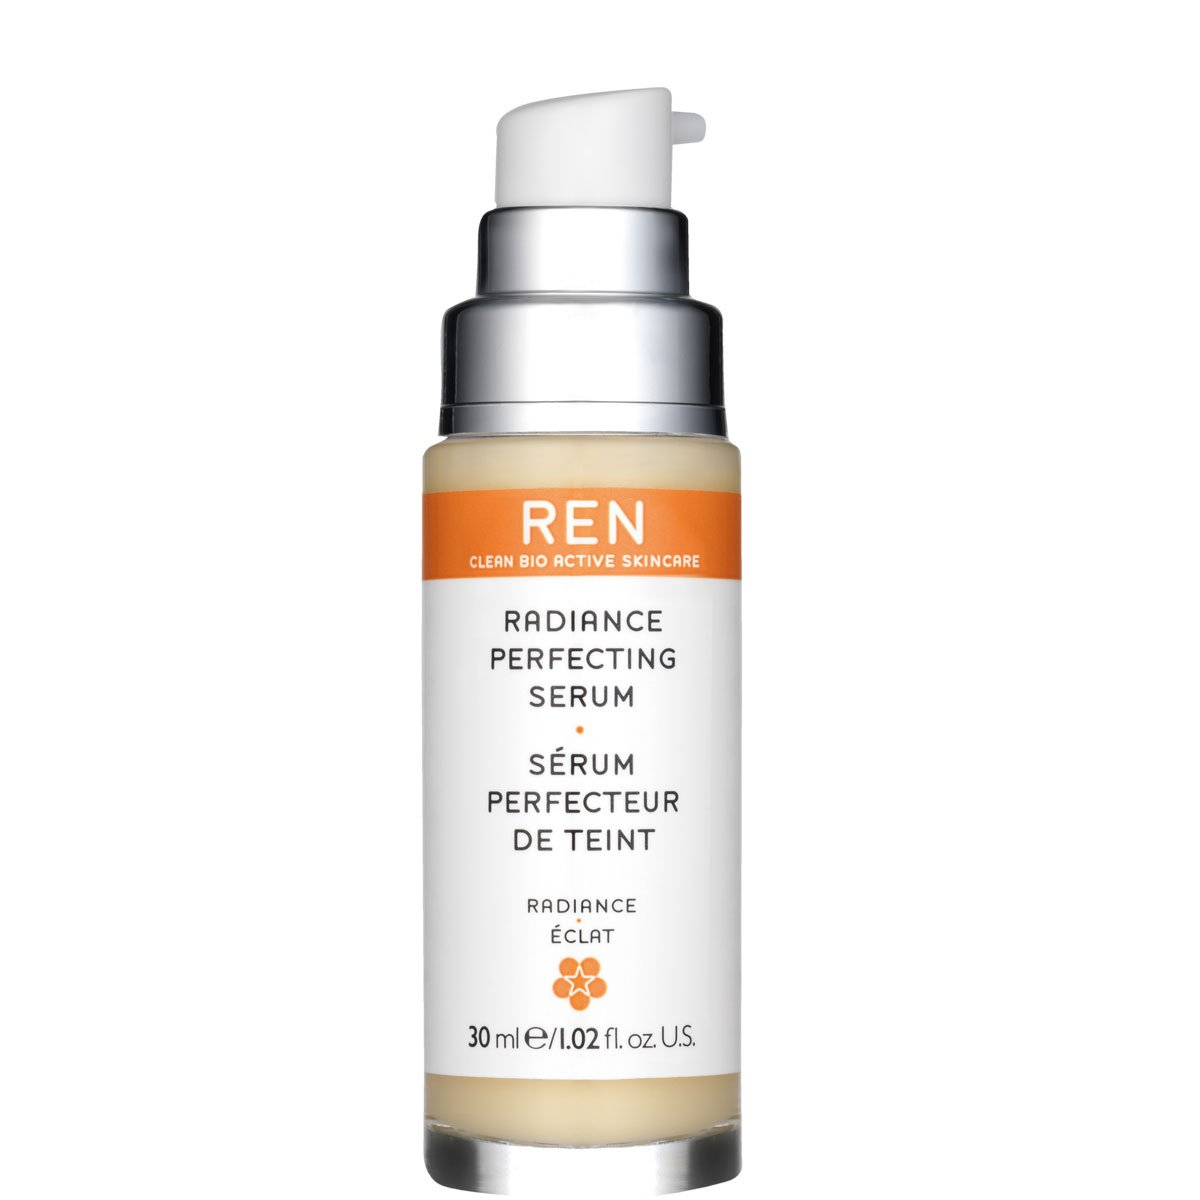 REN Radiance Perfection Serum 30ml/1.02oz 28003386